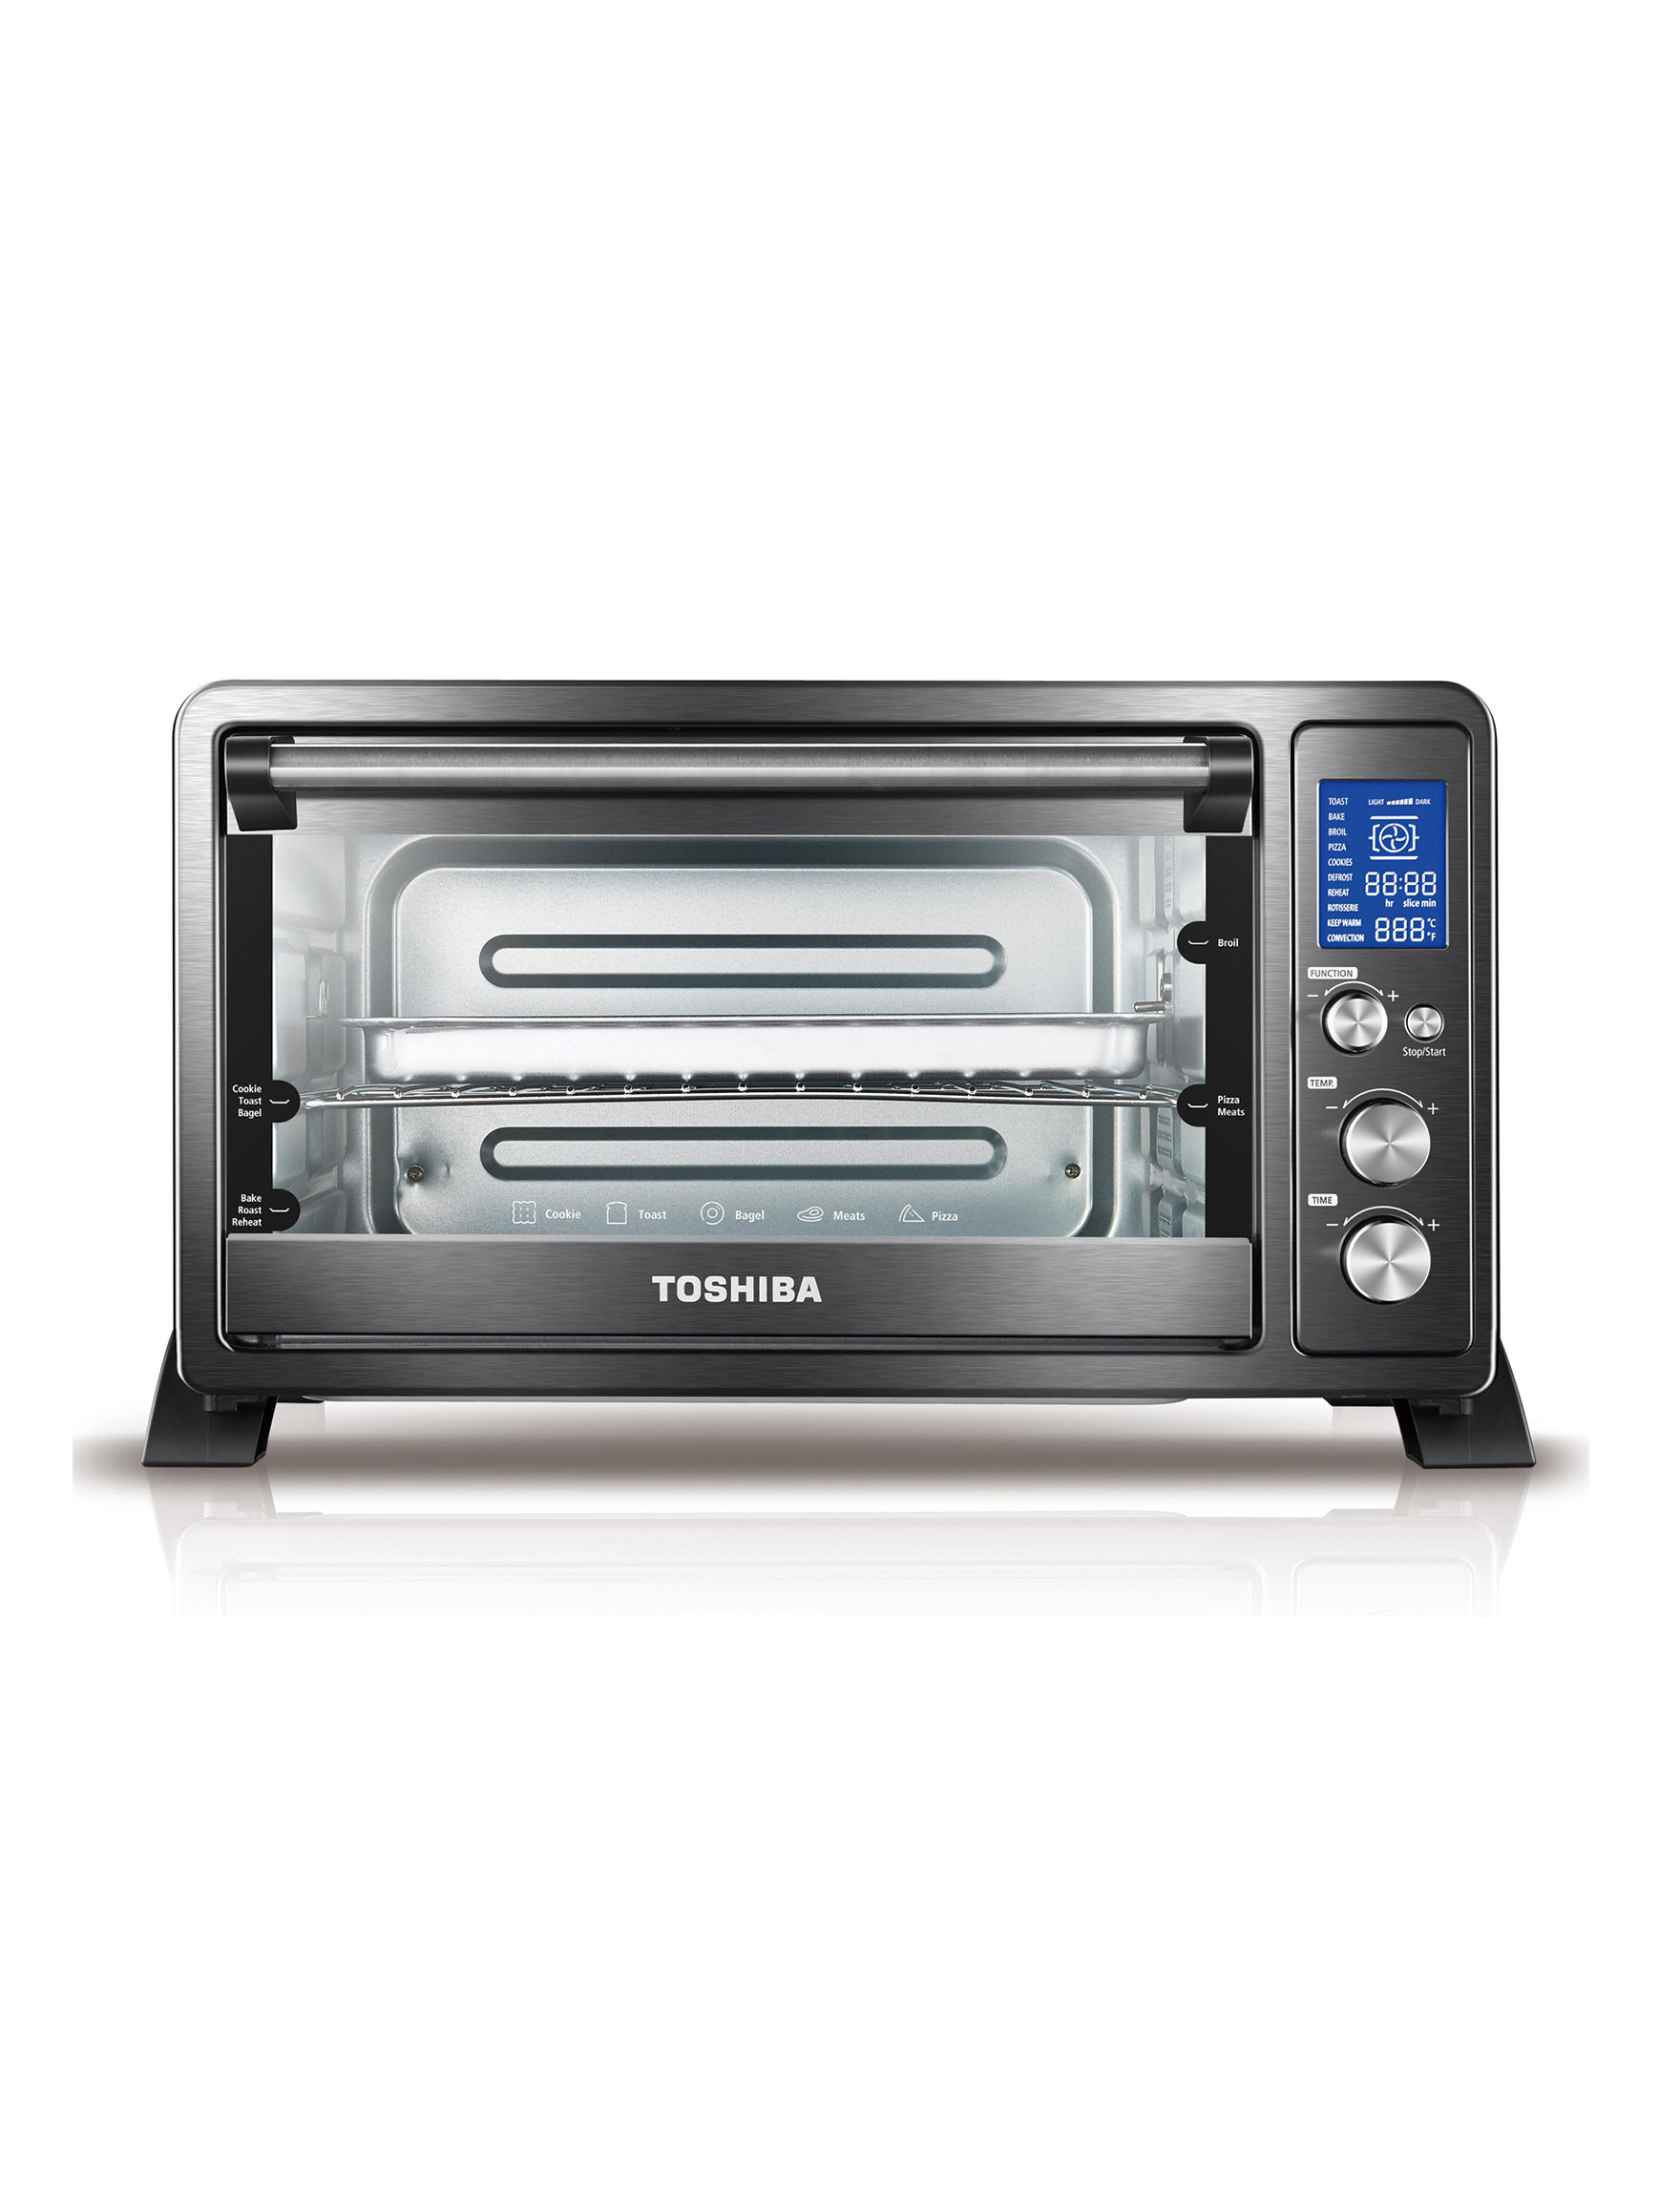 Toshiba Stainless Steel 6-Slice Digital Convection Toaster Oven - Black - Toshiba